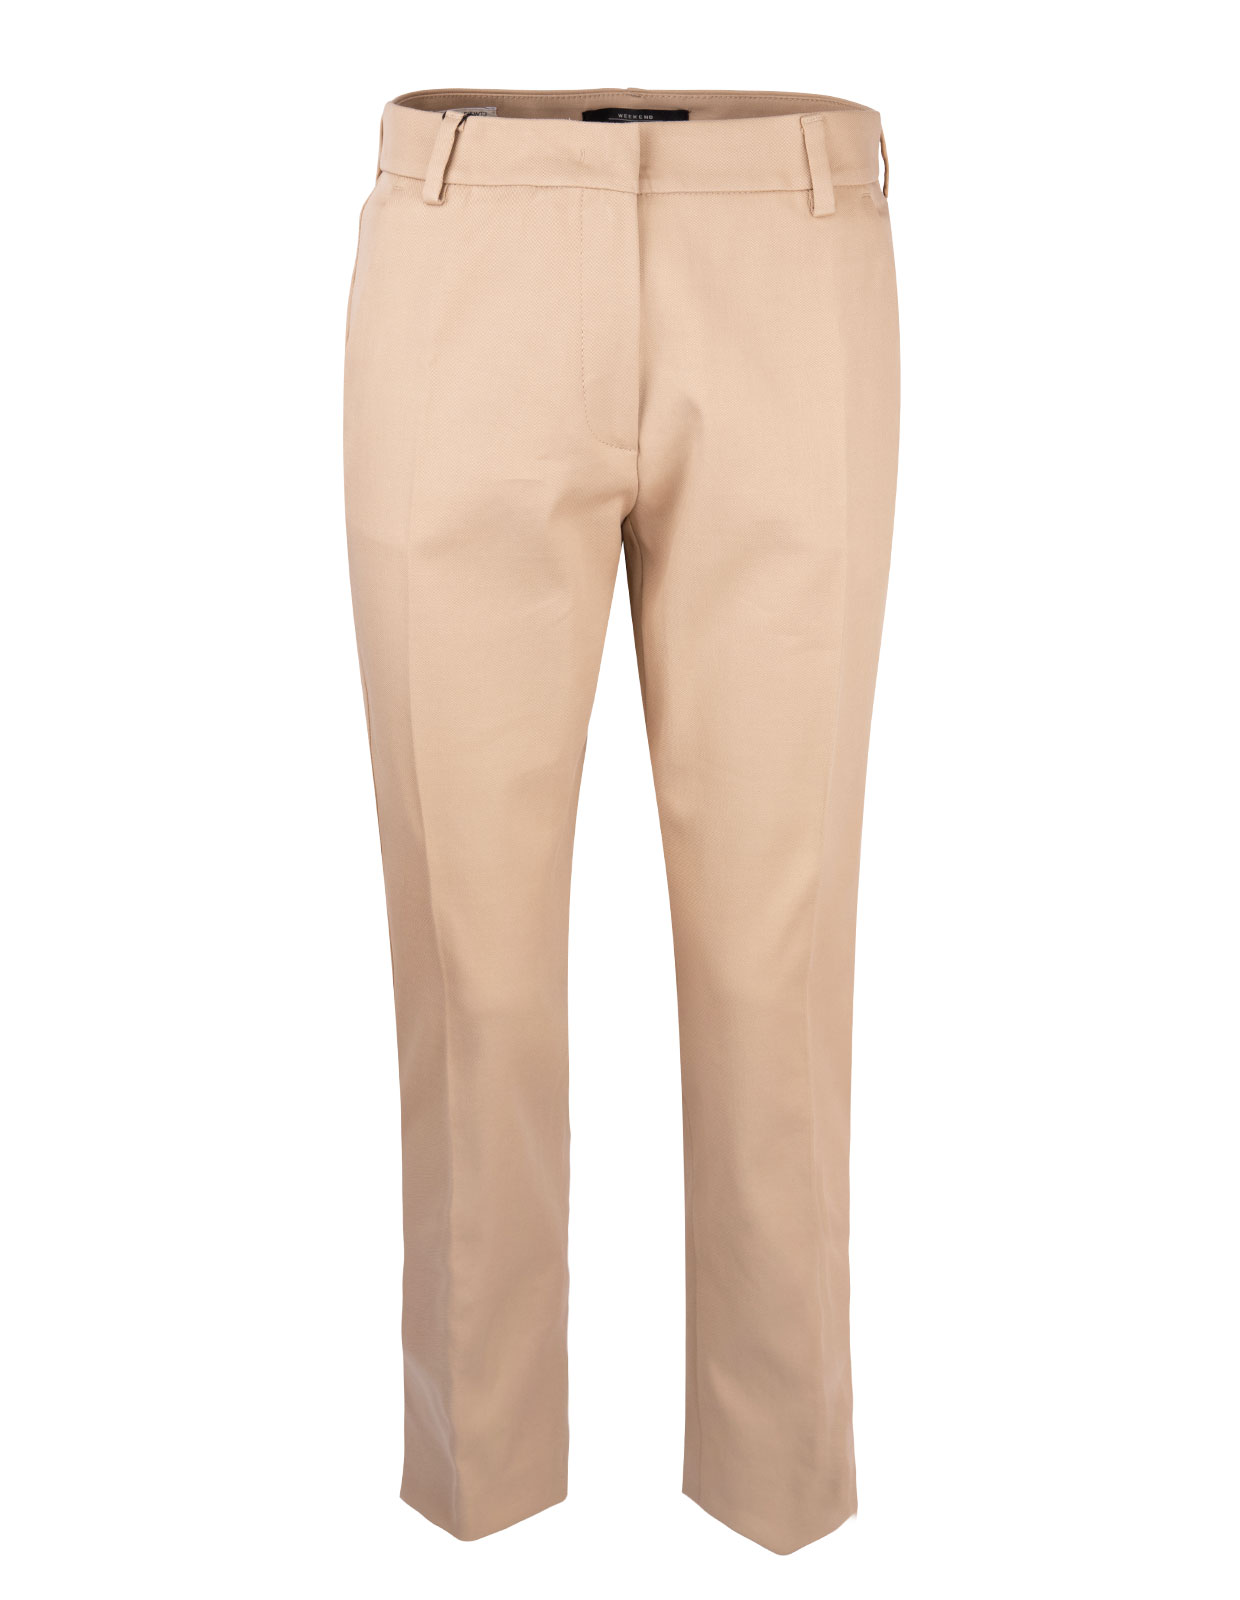 Cotton Trousers Vite Orzo